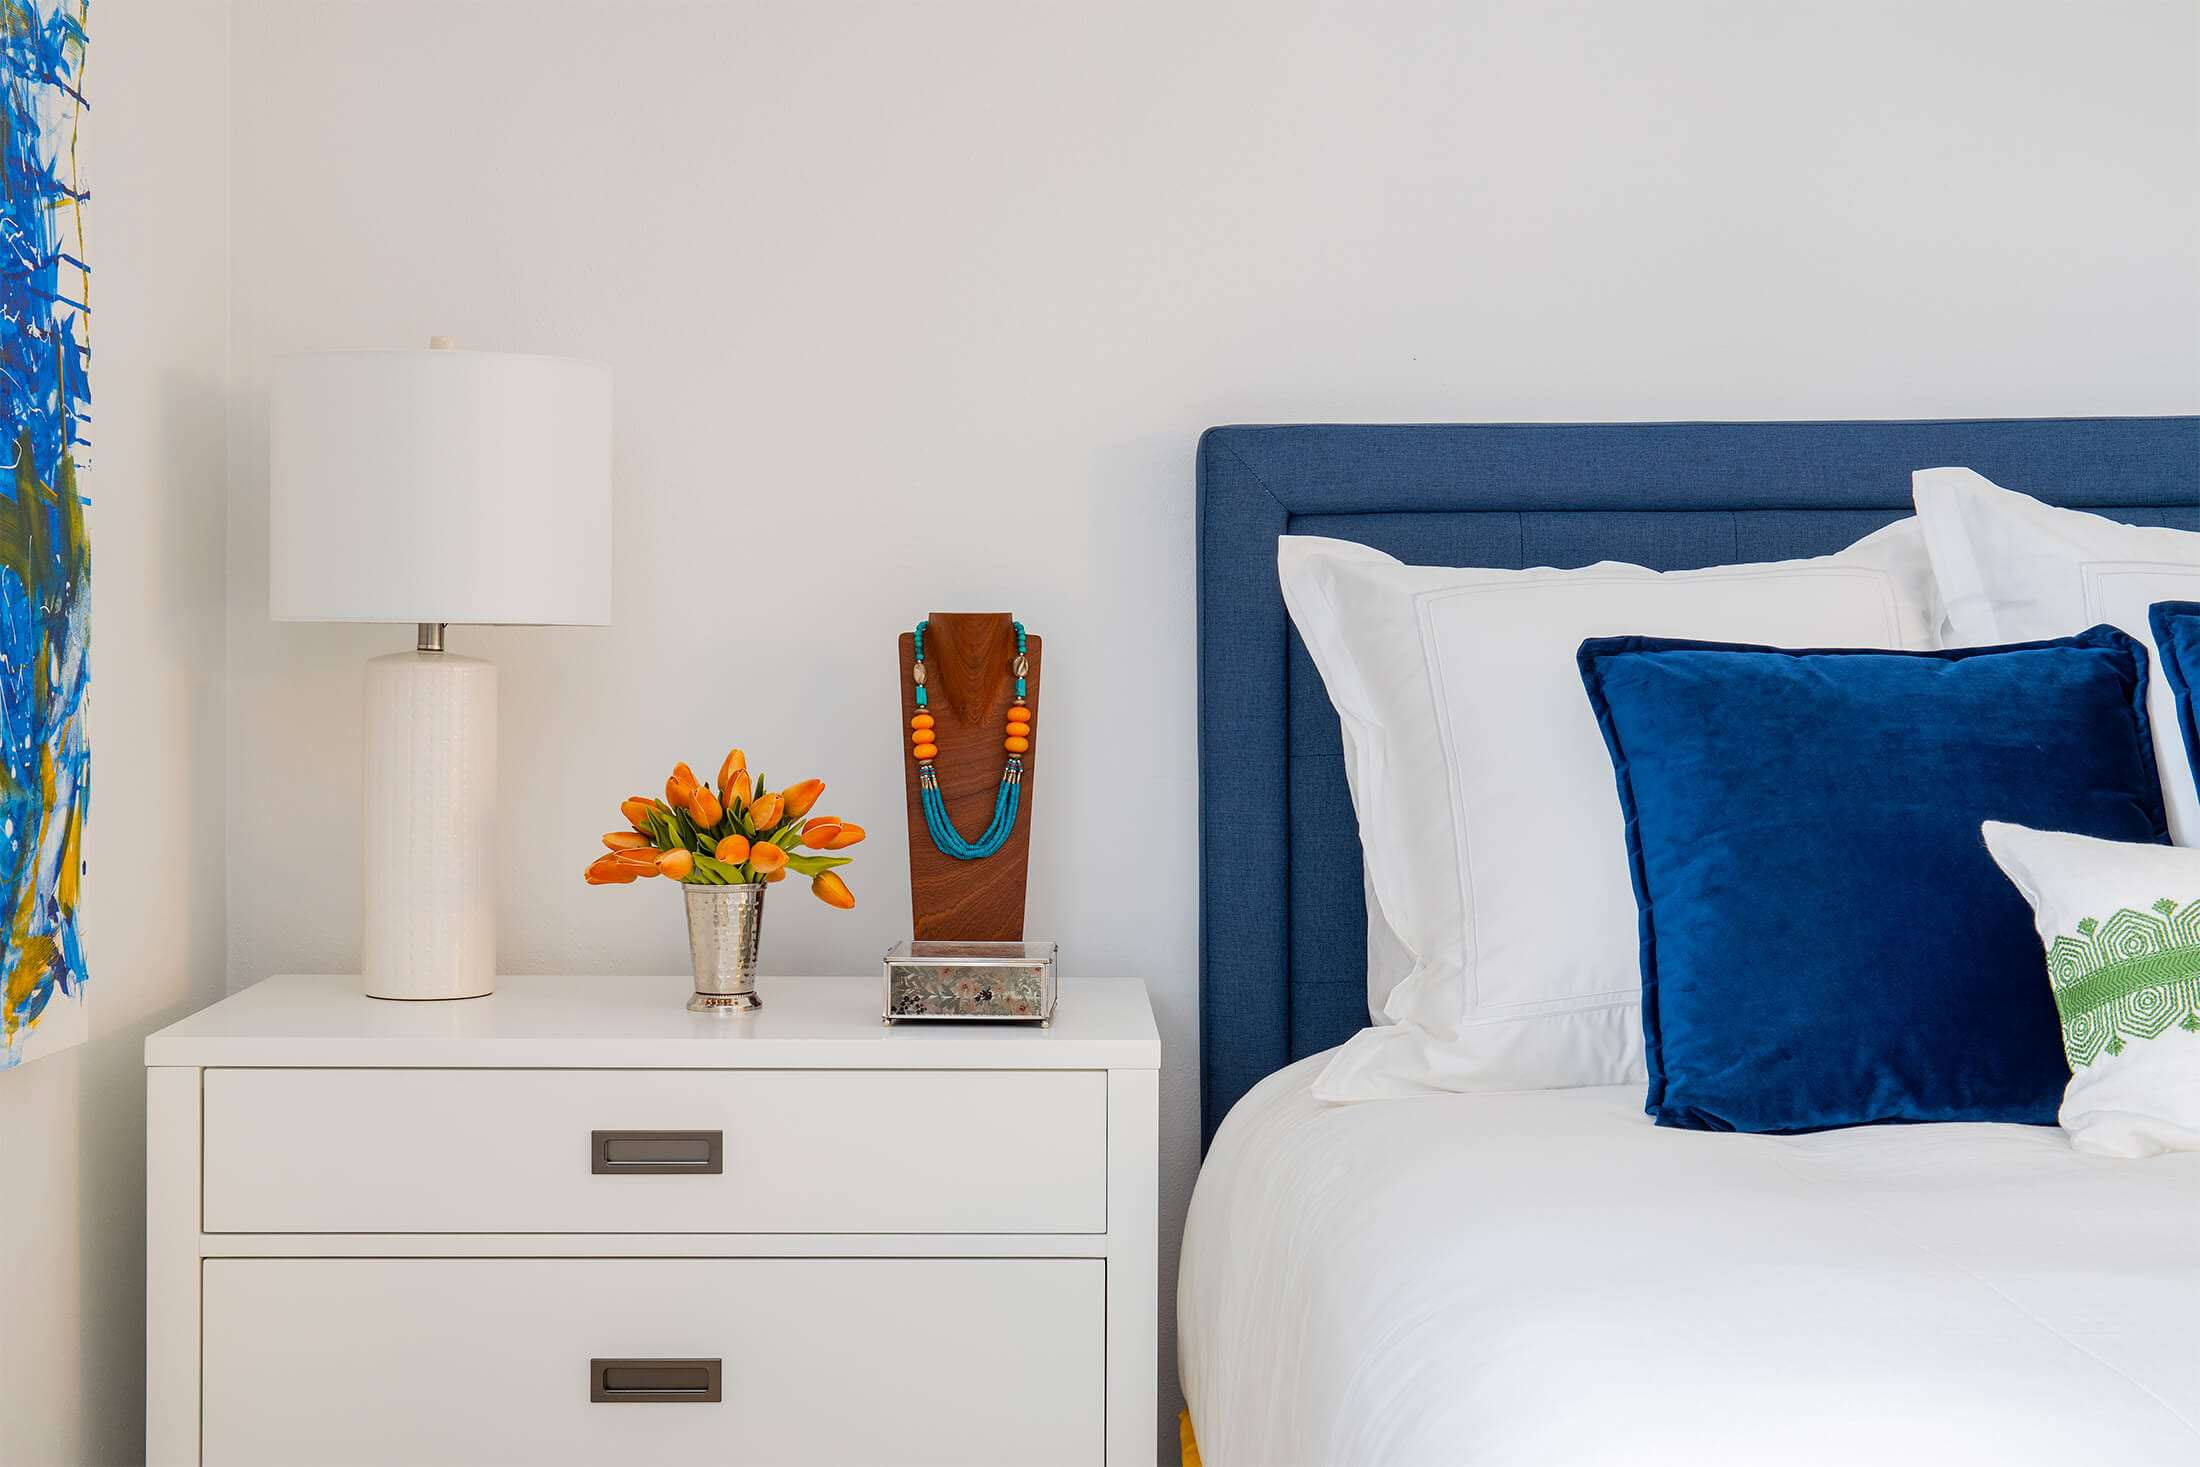 blue and white bedroom, small bouquet or orange flowers on nightstand